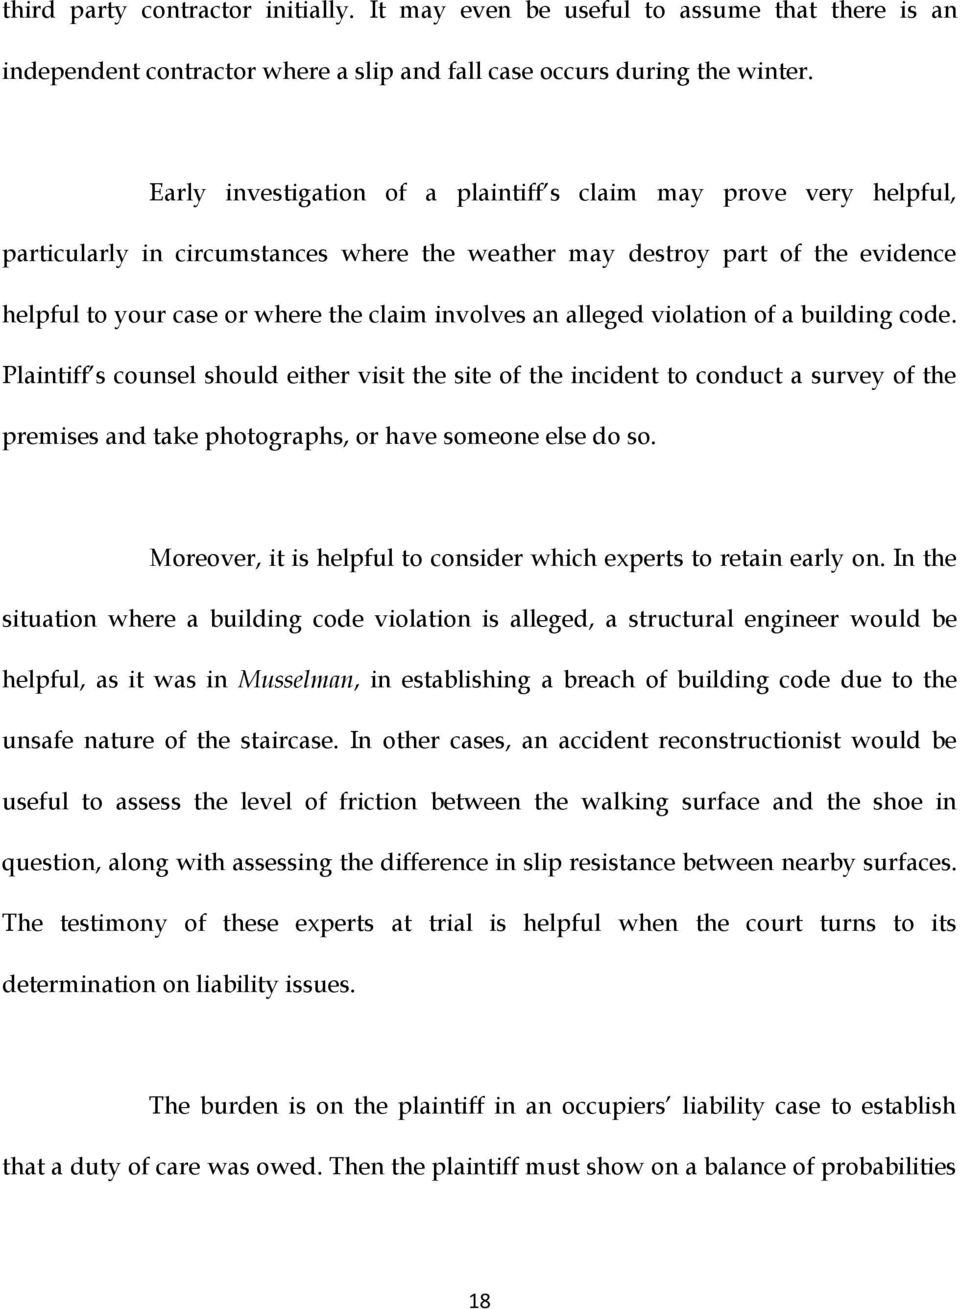 alleged violation of a building code. Plaintiff s counsel should either visit the site of the incident to conduct a survey of the premises and take photographs, or have someone else do so.